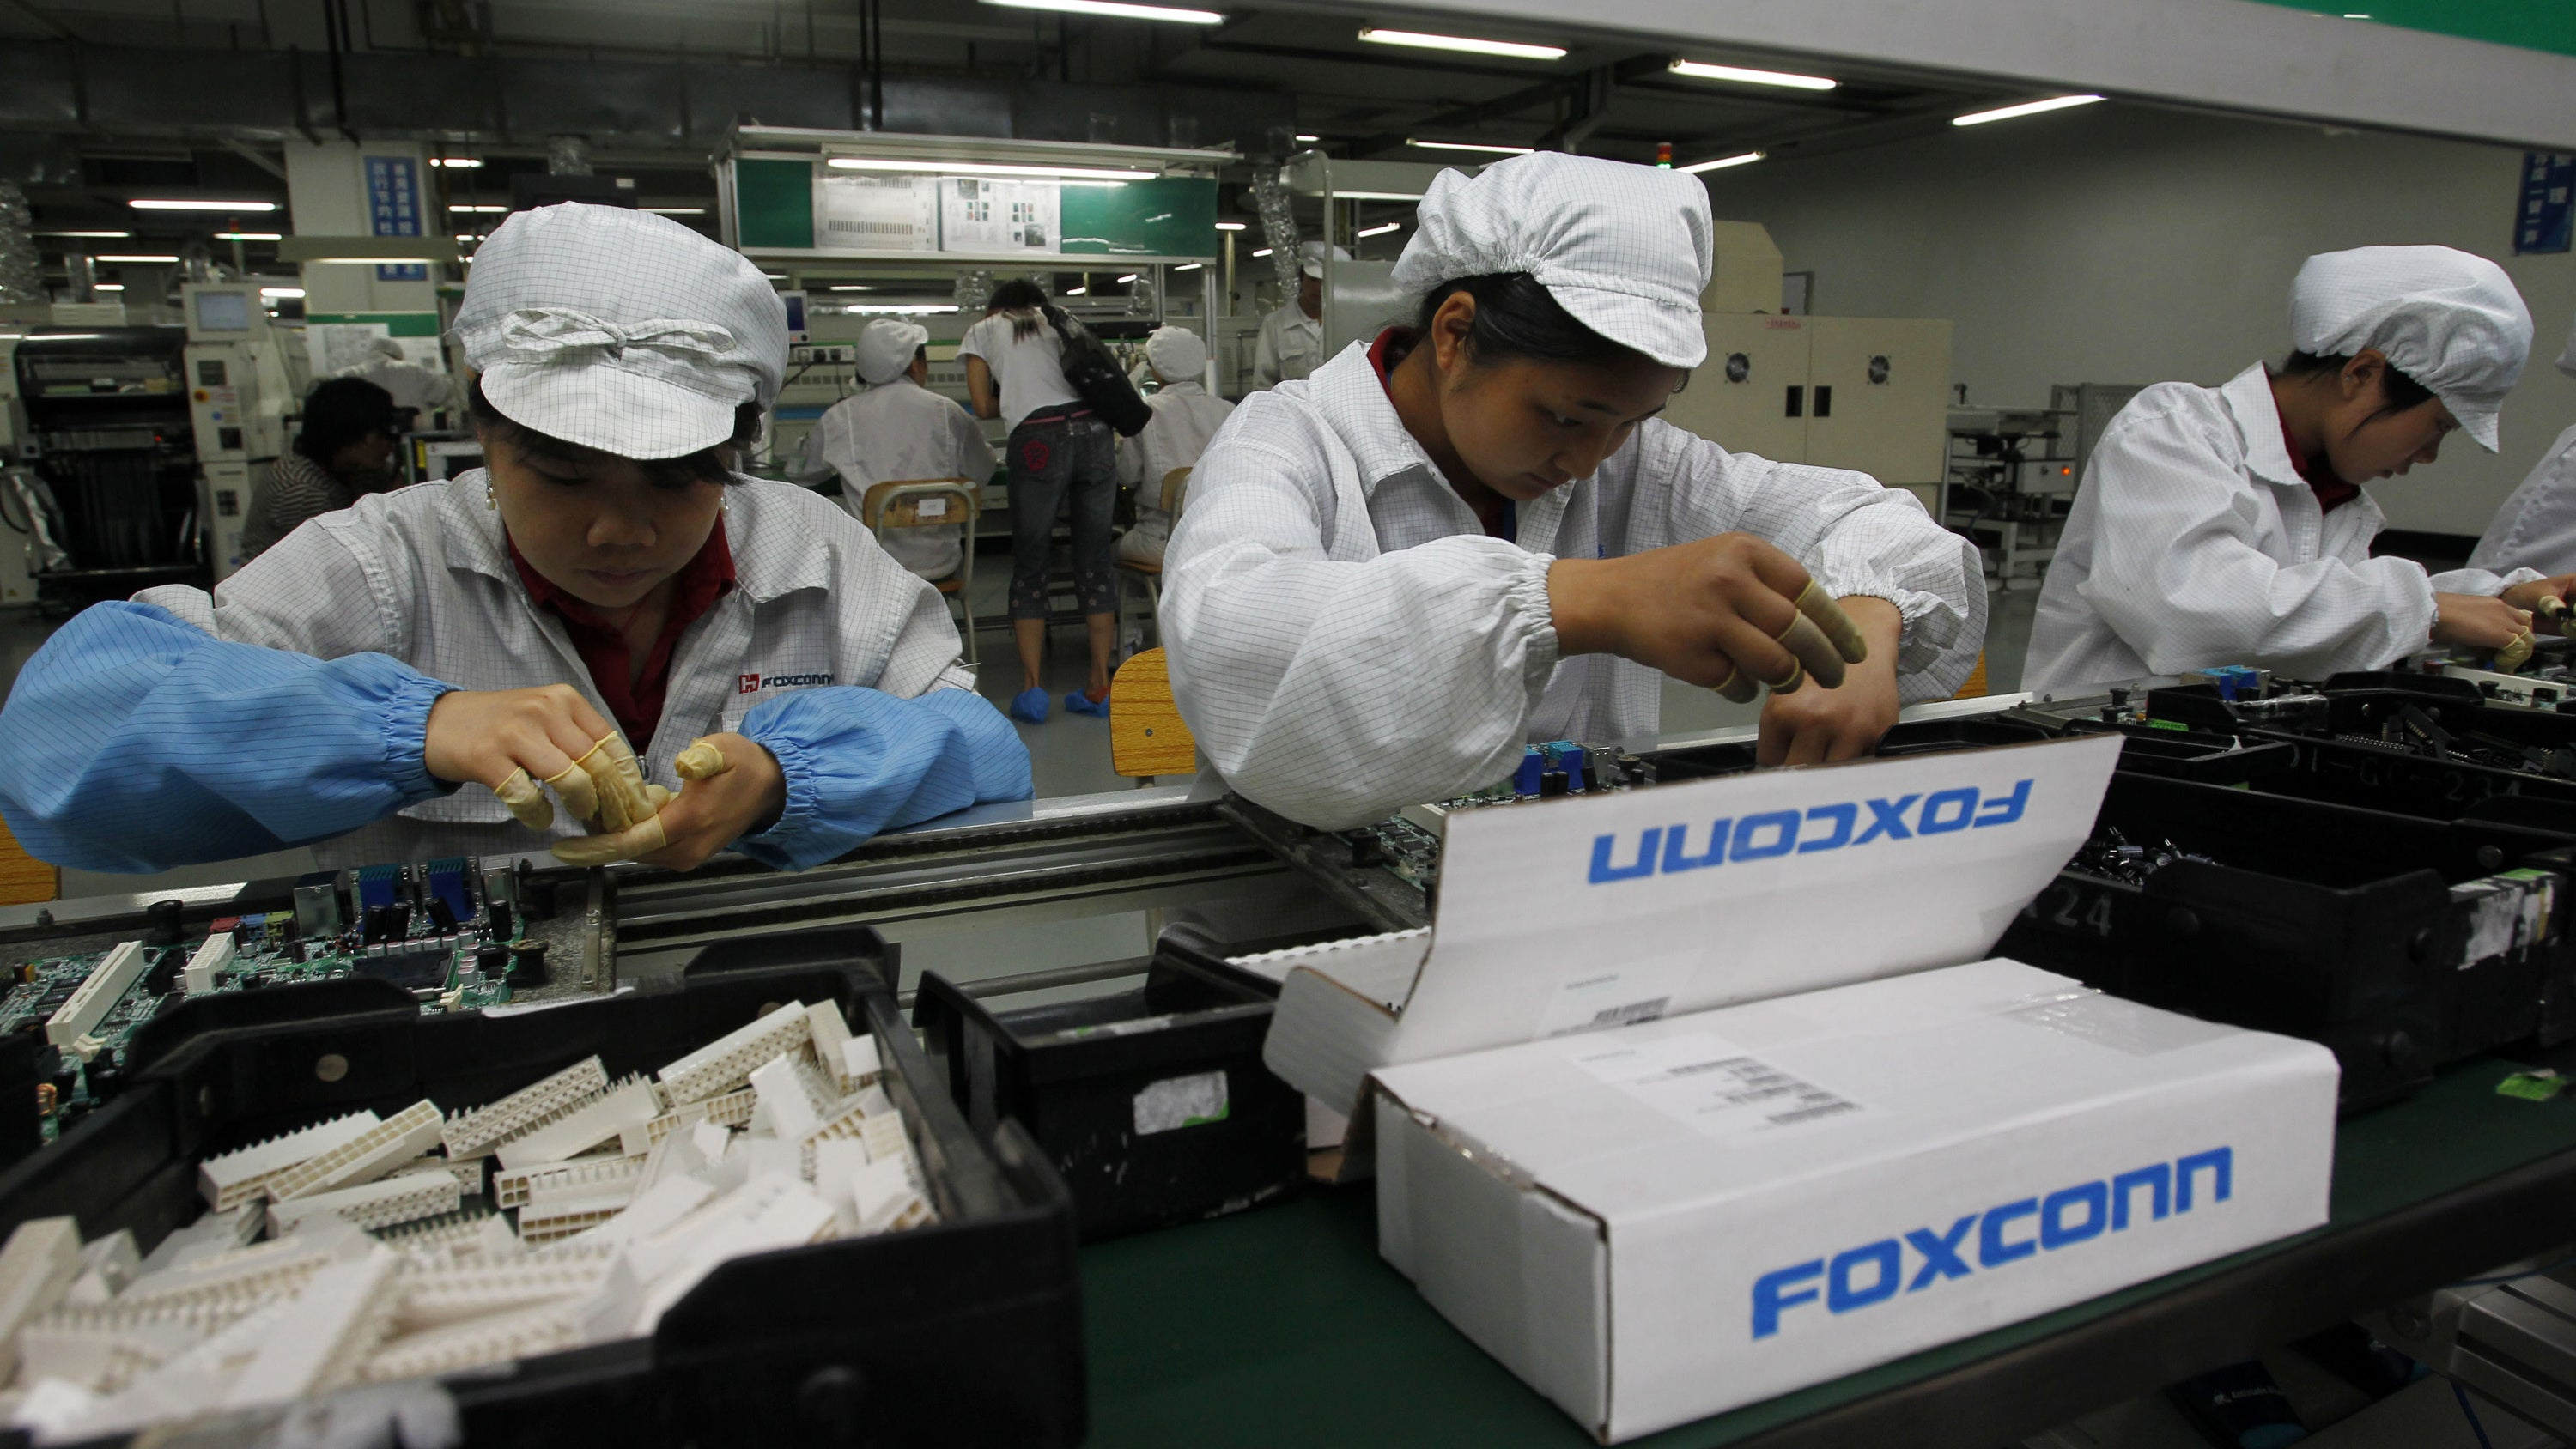 IPhone X assembly carried out by students working illegal overtime